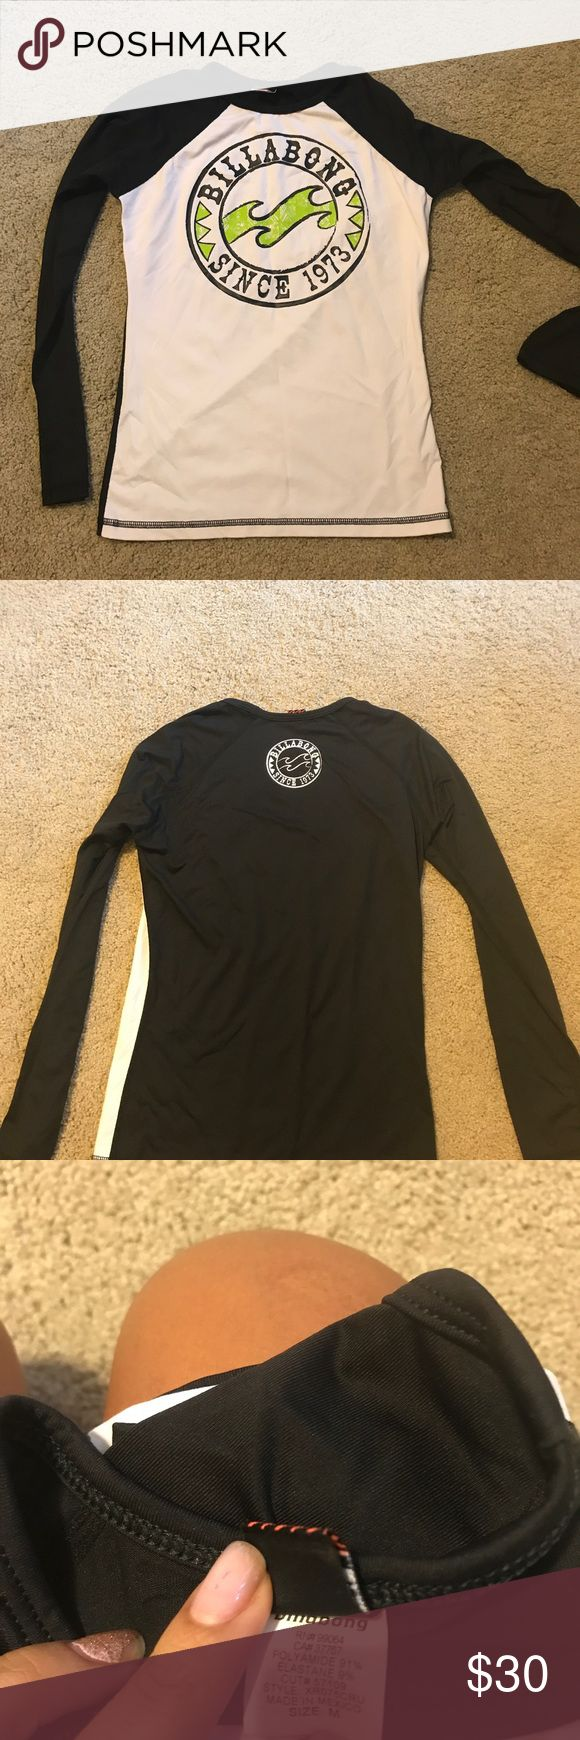 Billabong rash guard Brand new without tags. Size medium. Great use for being in the water jet skiing, booth boarding, surfing...😬 Billabong Swim Coverups